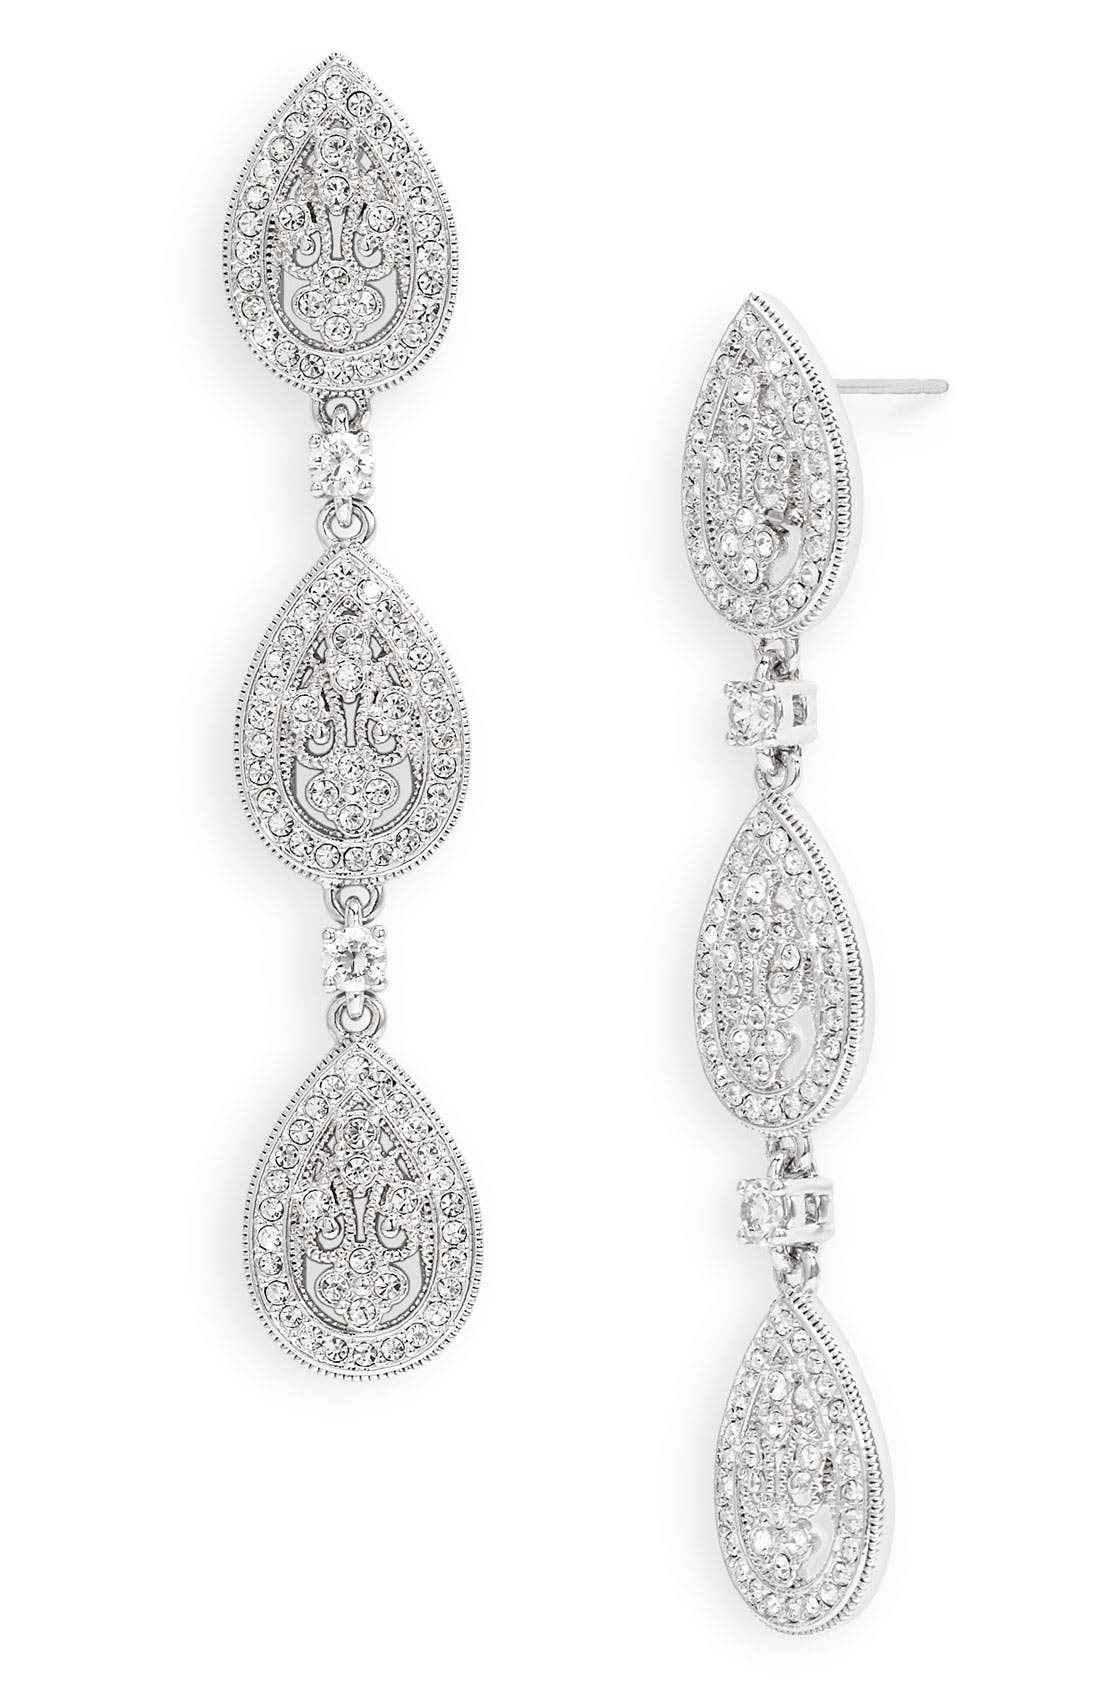 Main Image - Nadri Crystal Teardrop Linear Earrings